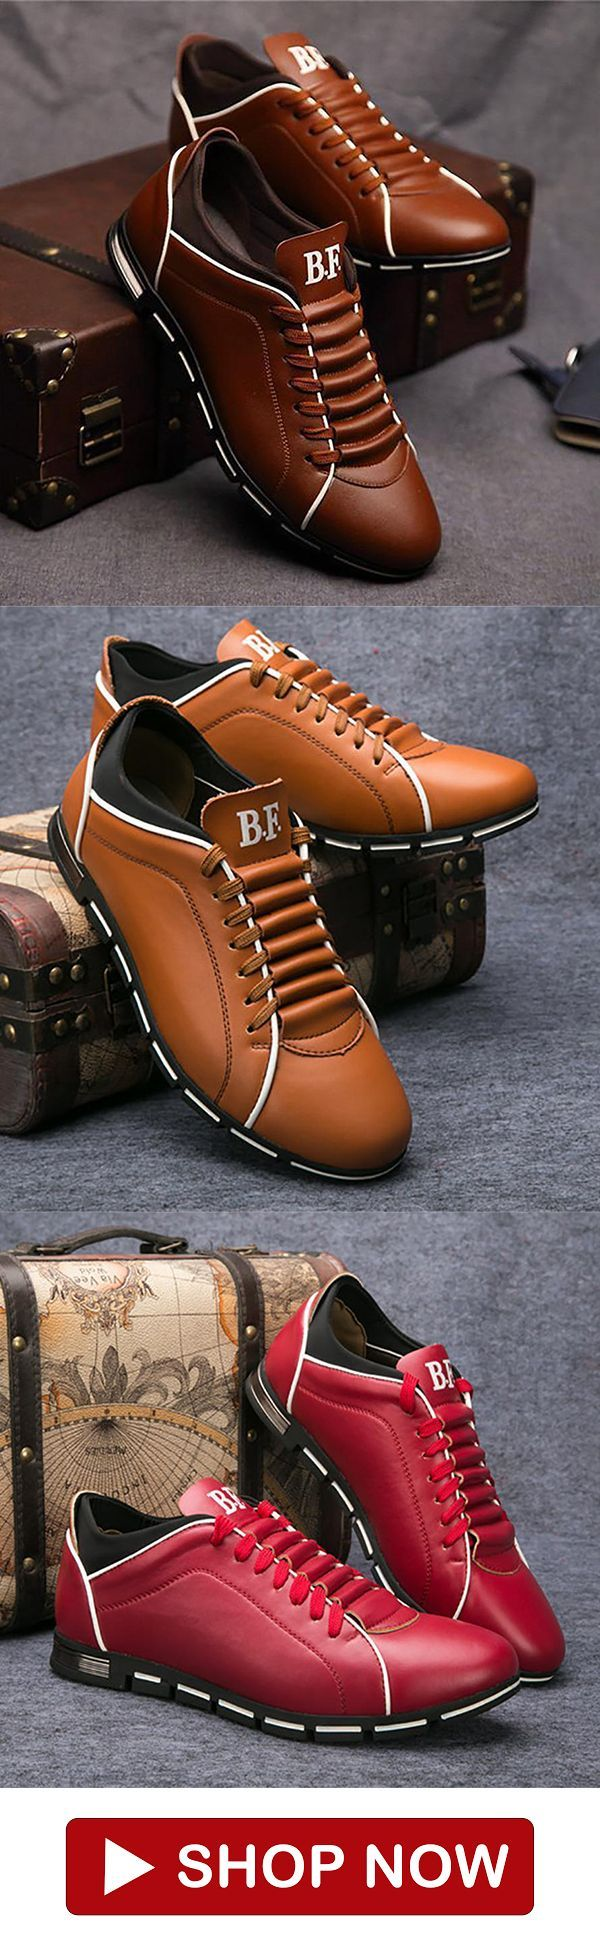 Photo of Men's comfortable casual fashion shoes